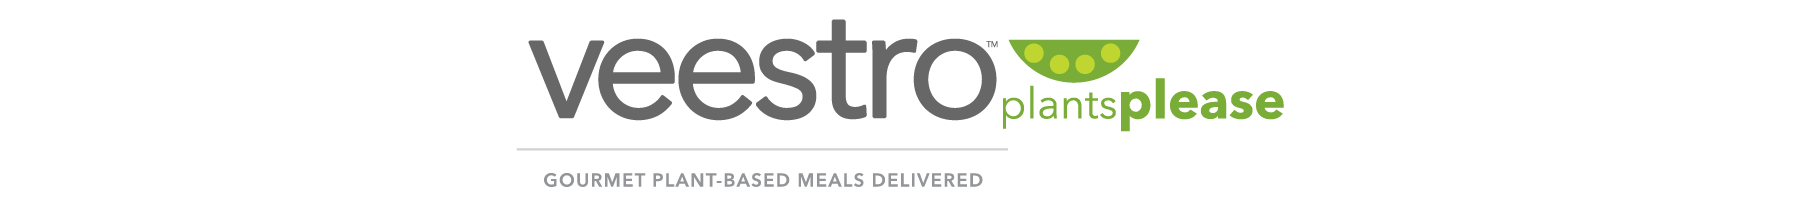 Veestro meal examples